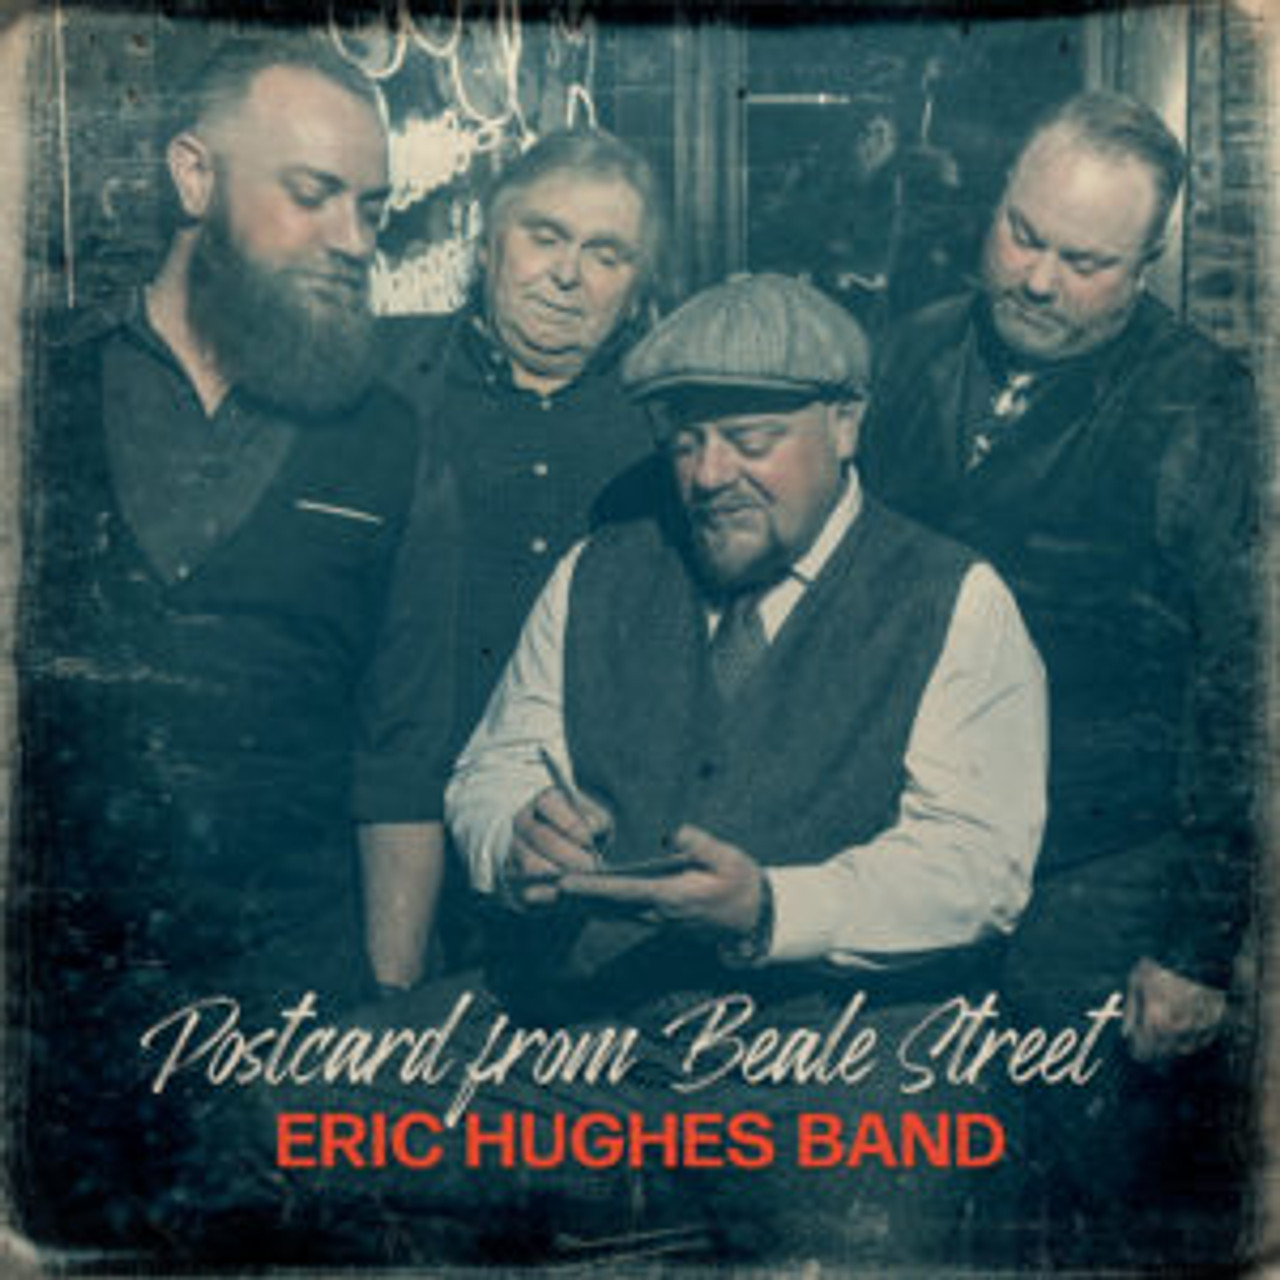 ERIC HUGHES - POSTCARDS FROM BEALE